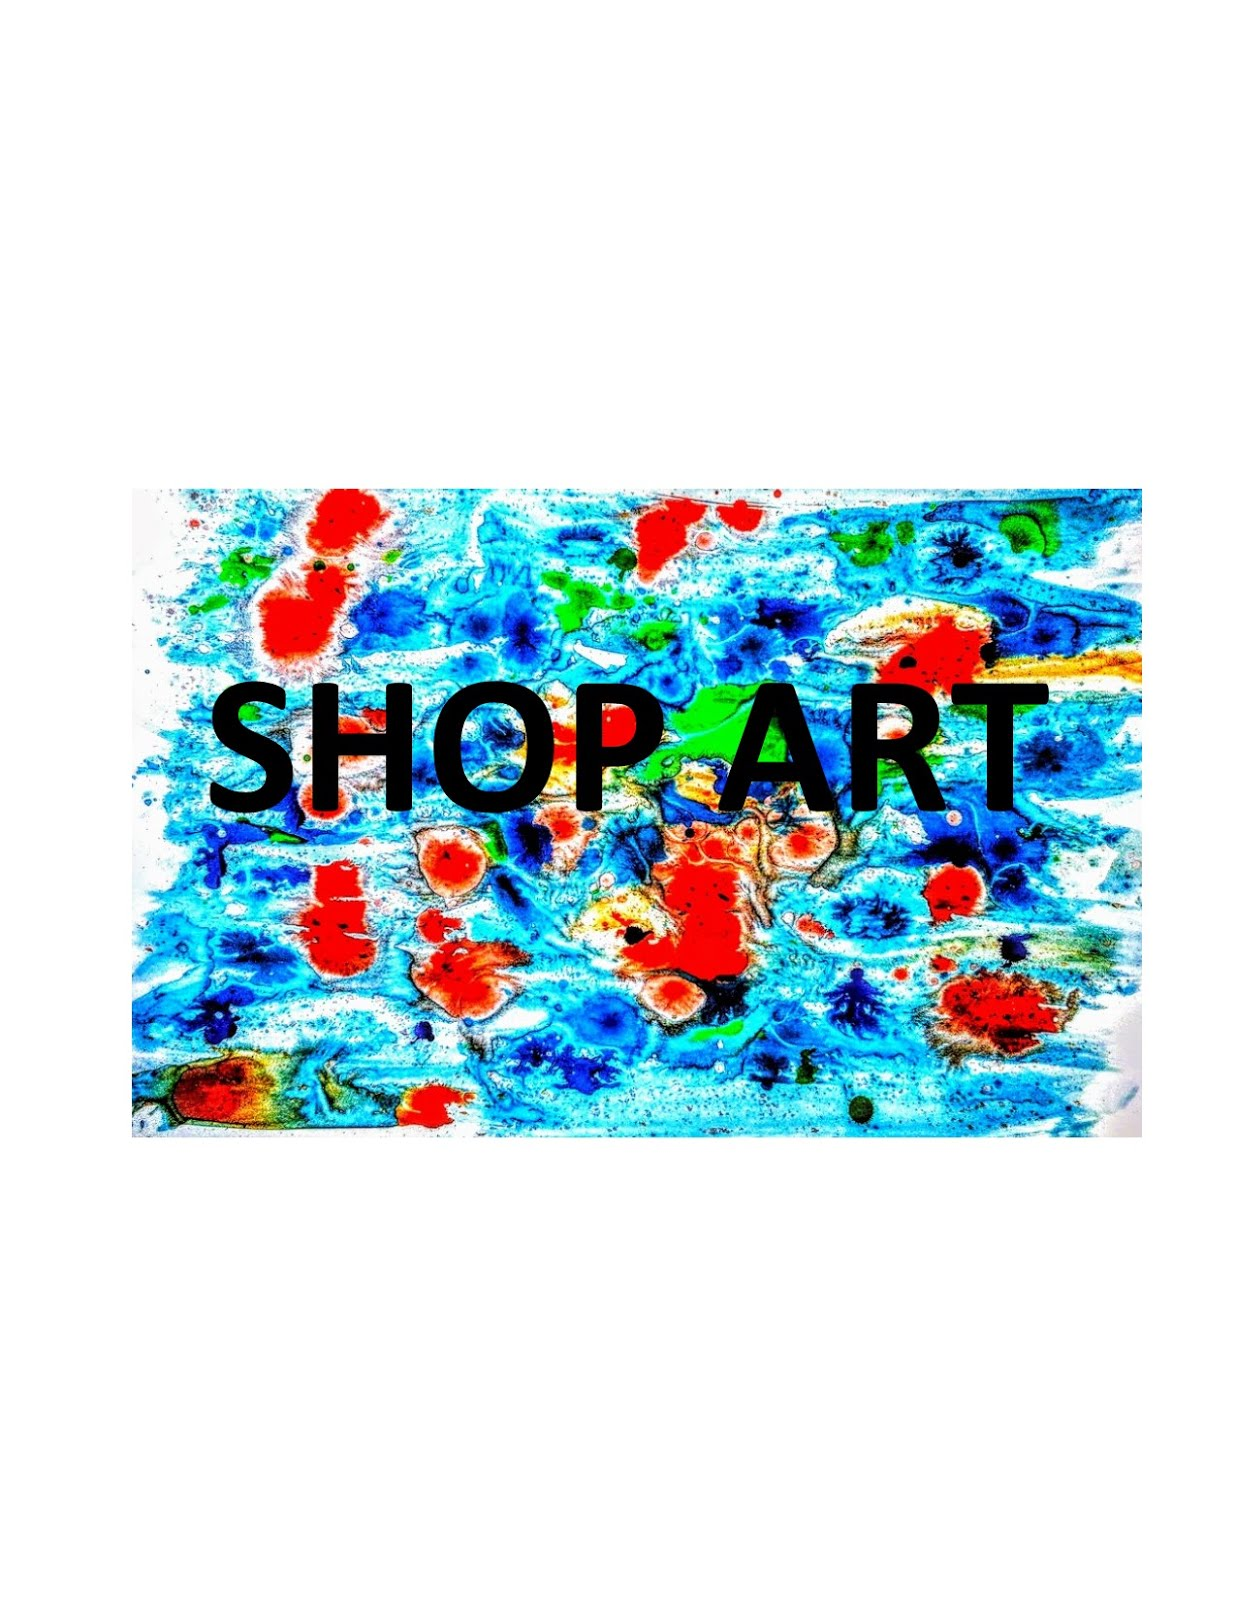 BUY ART BY MIABO HERE.15% OFF ALL ART FOR THE HOME